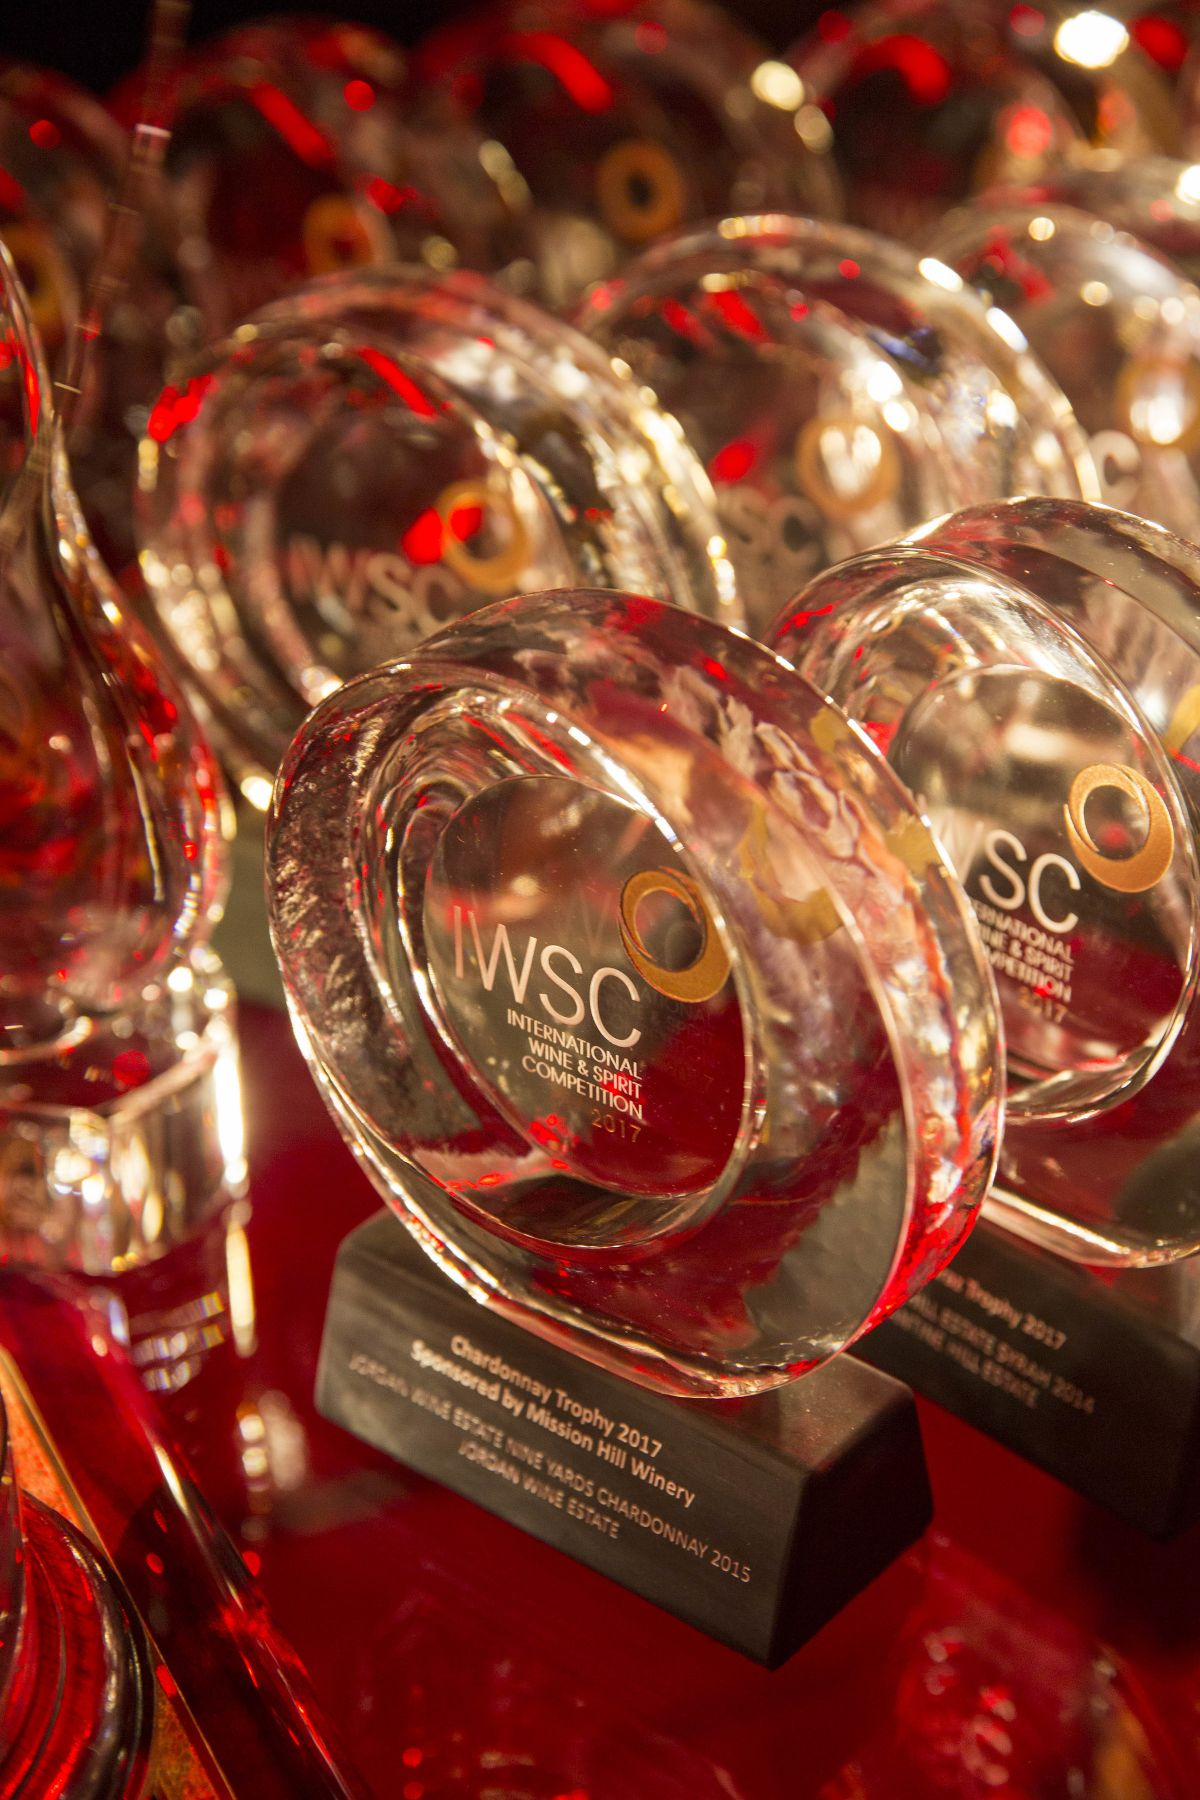 Wine Product Award winners announced